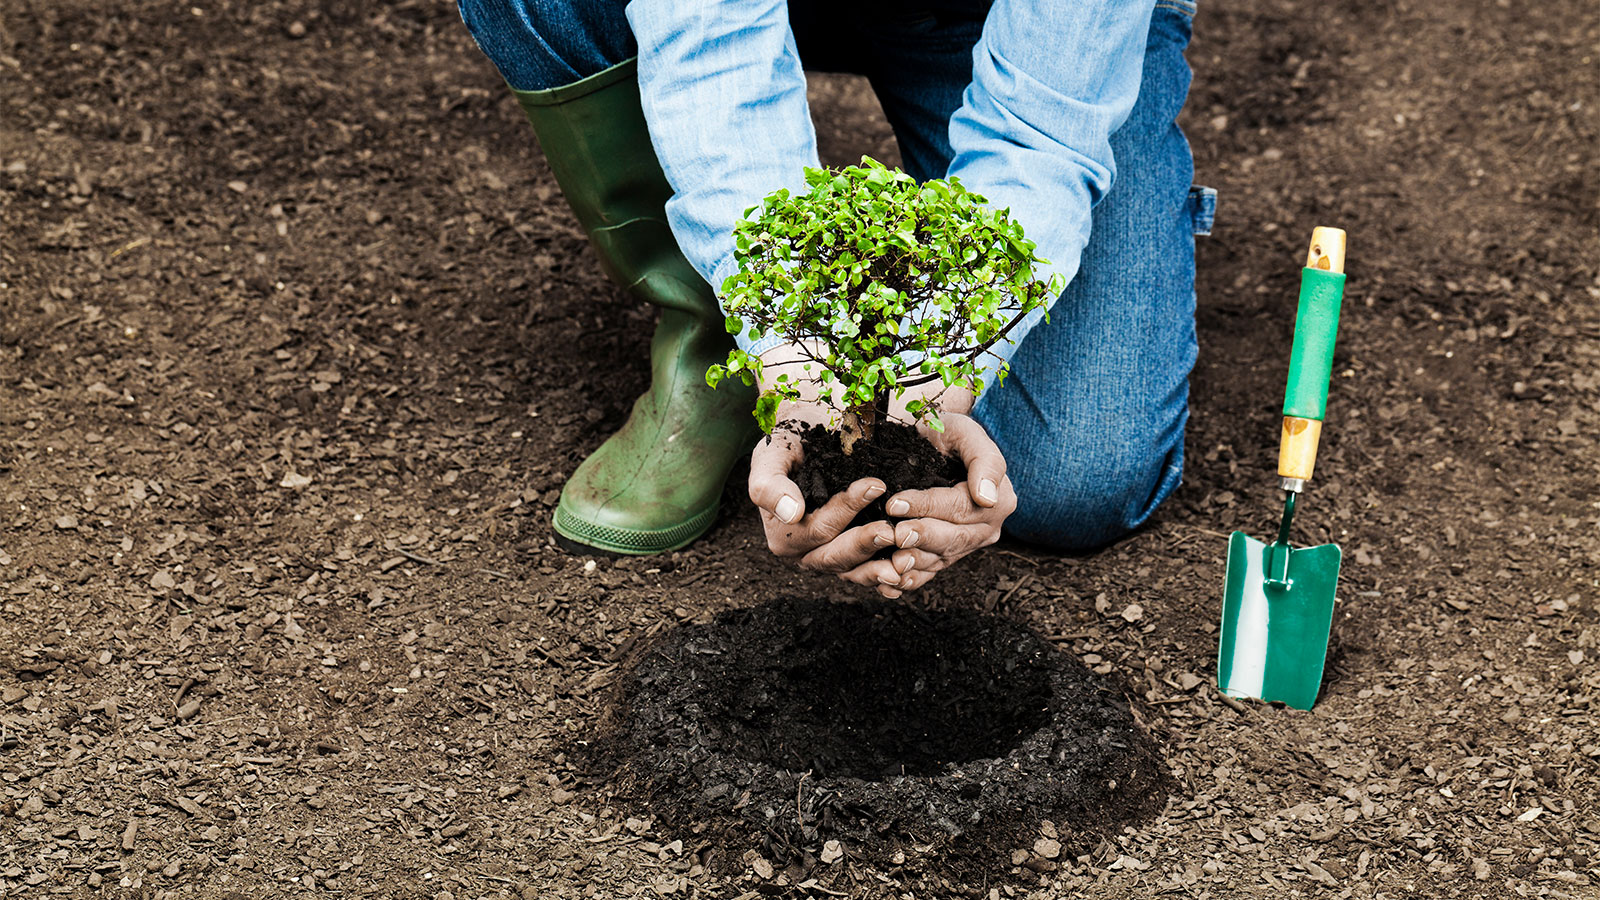 A person planting a tree